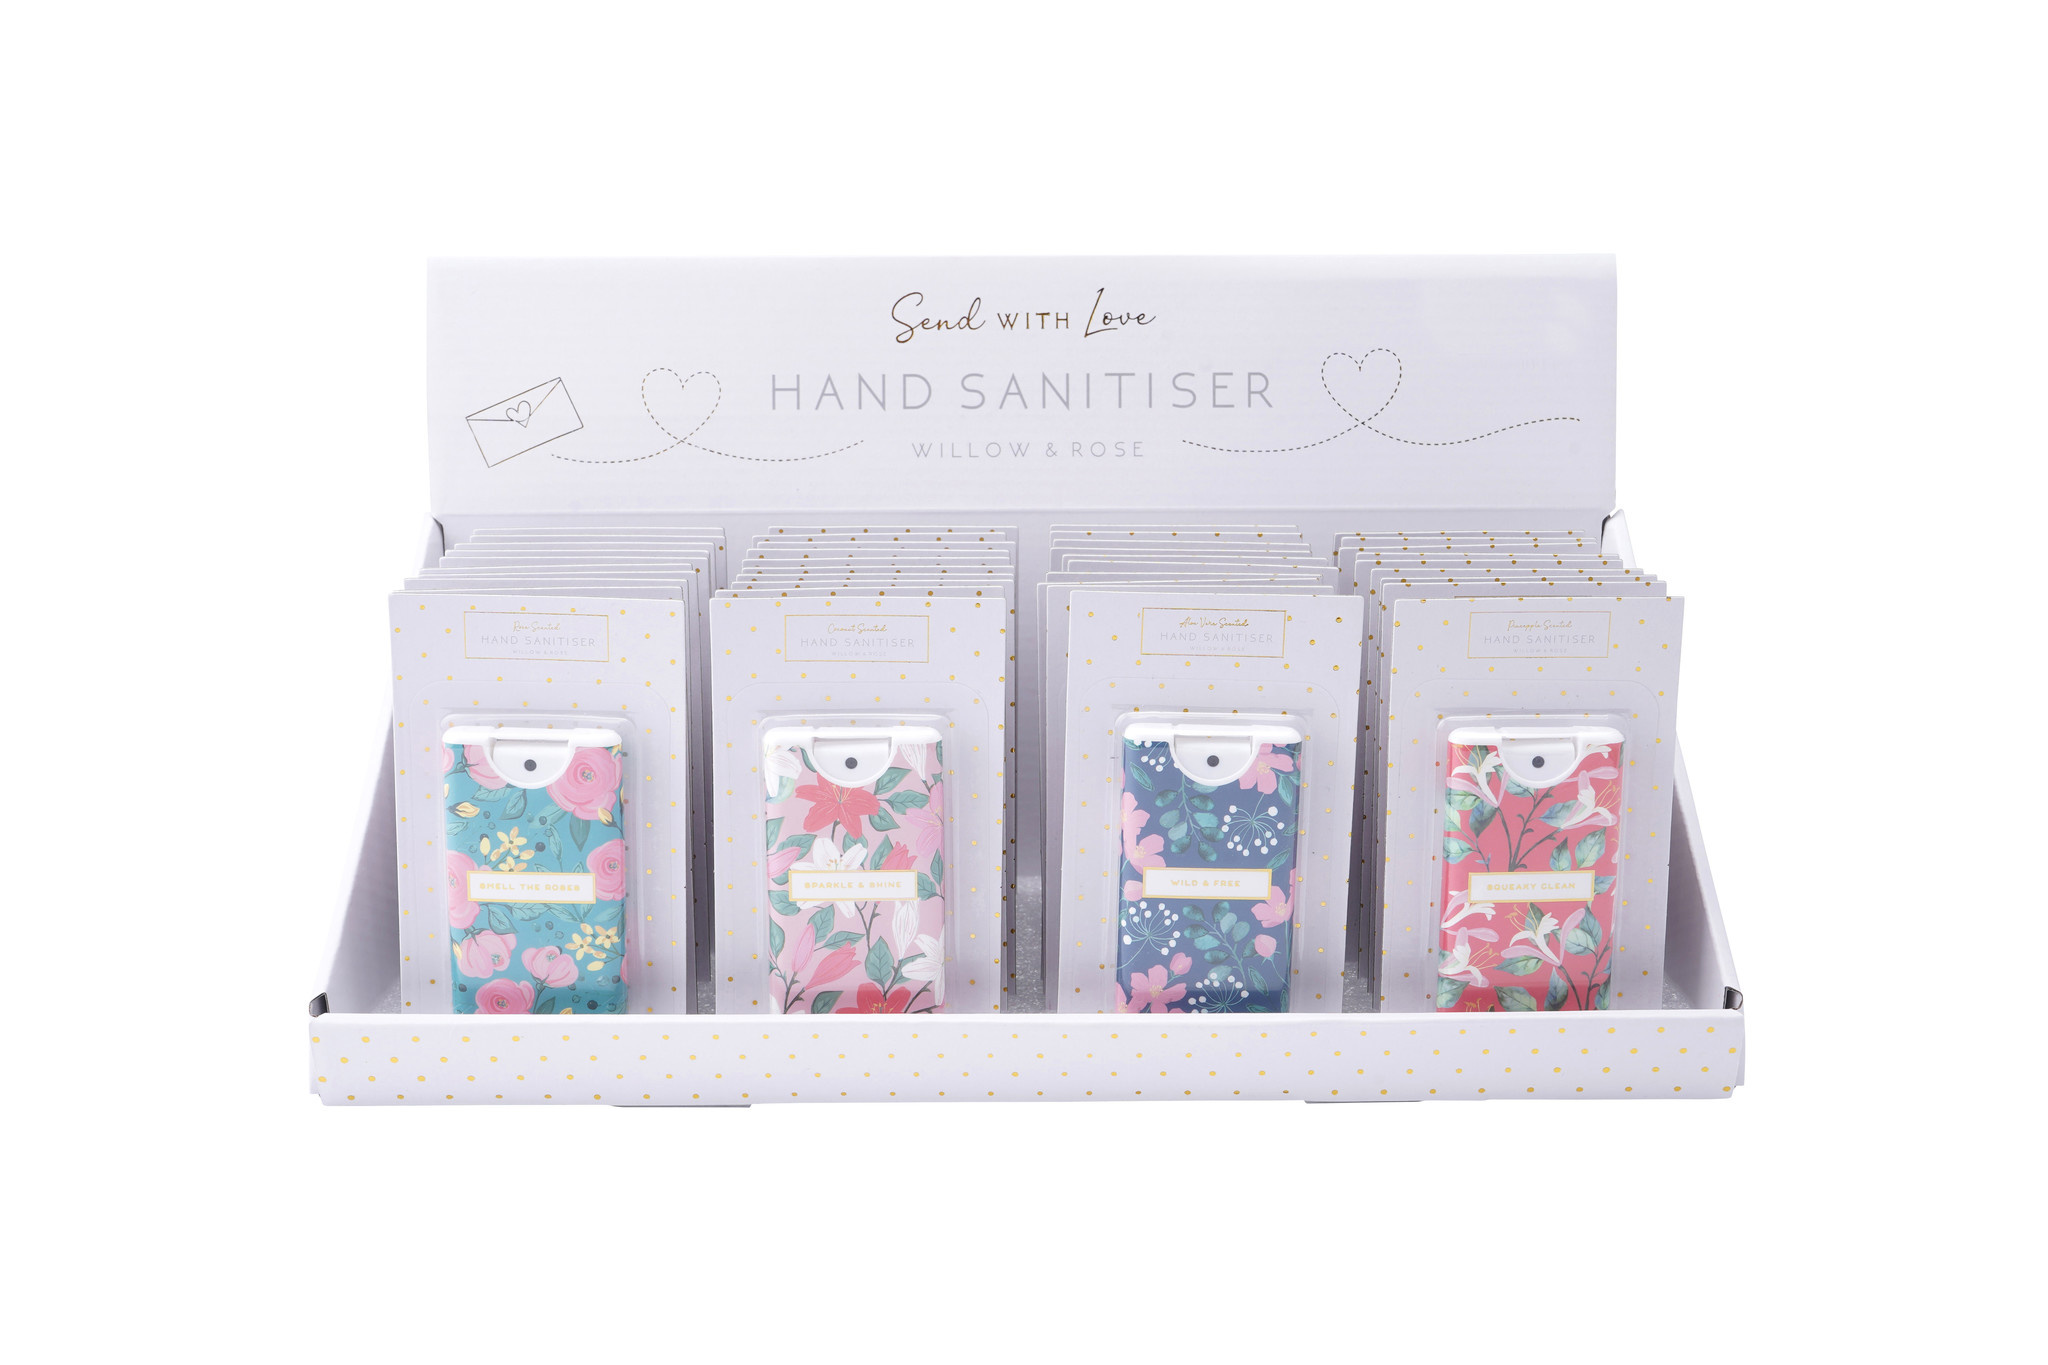 CGB Giftware Desinfectie handgel Willow & Rose Smell the Roses